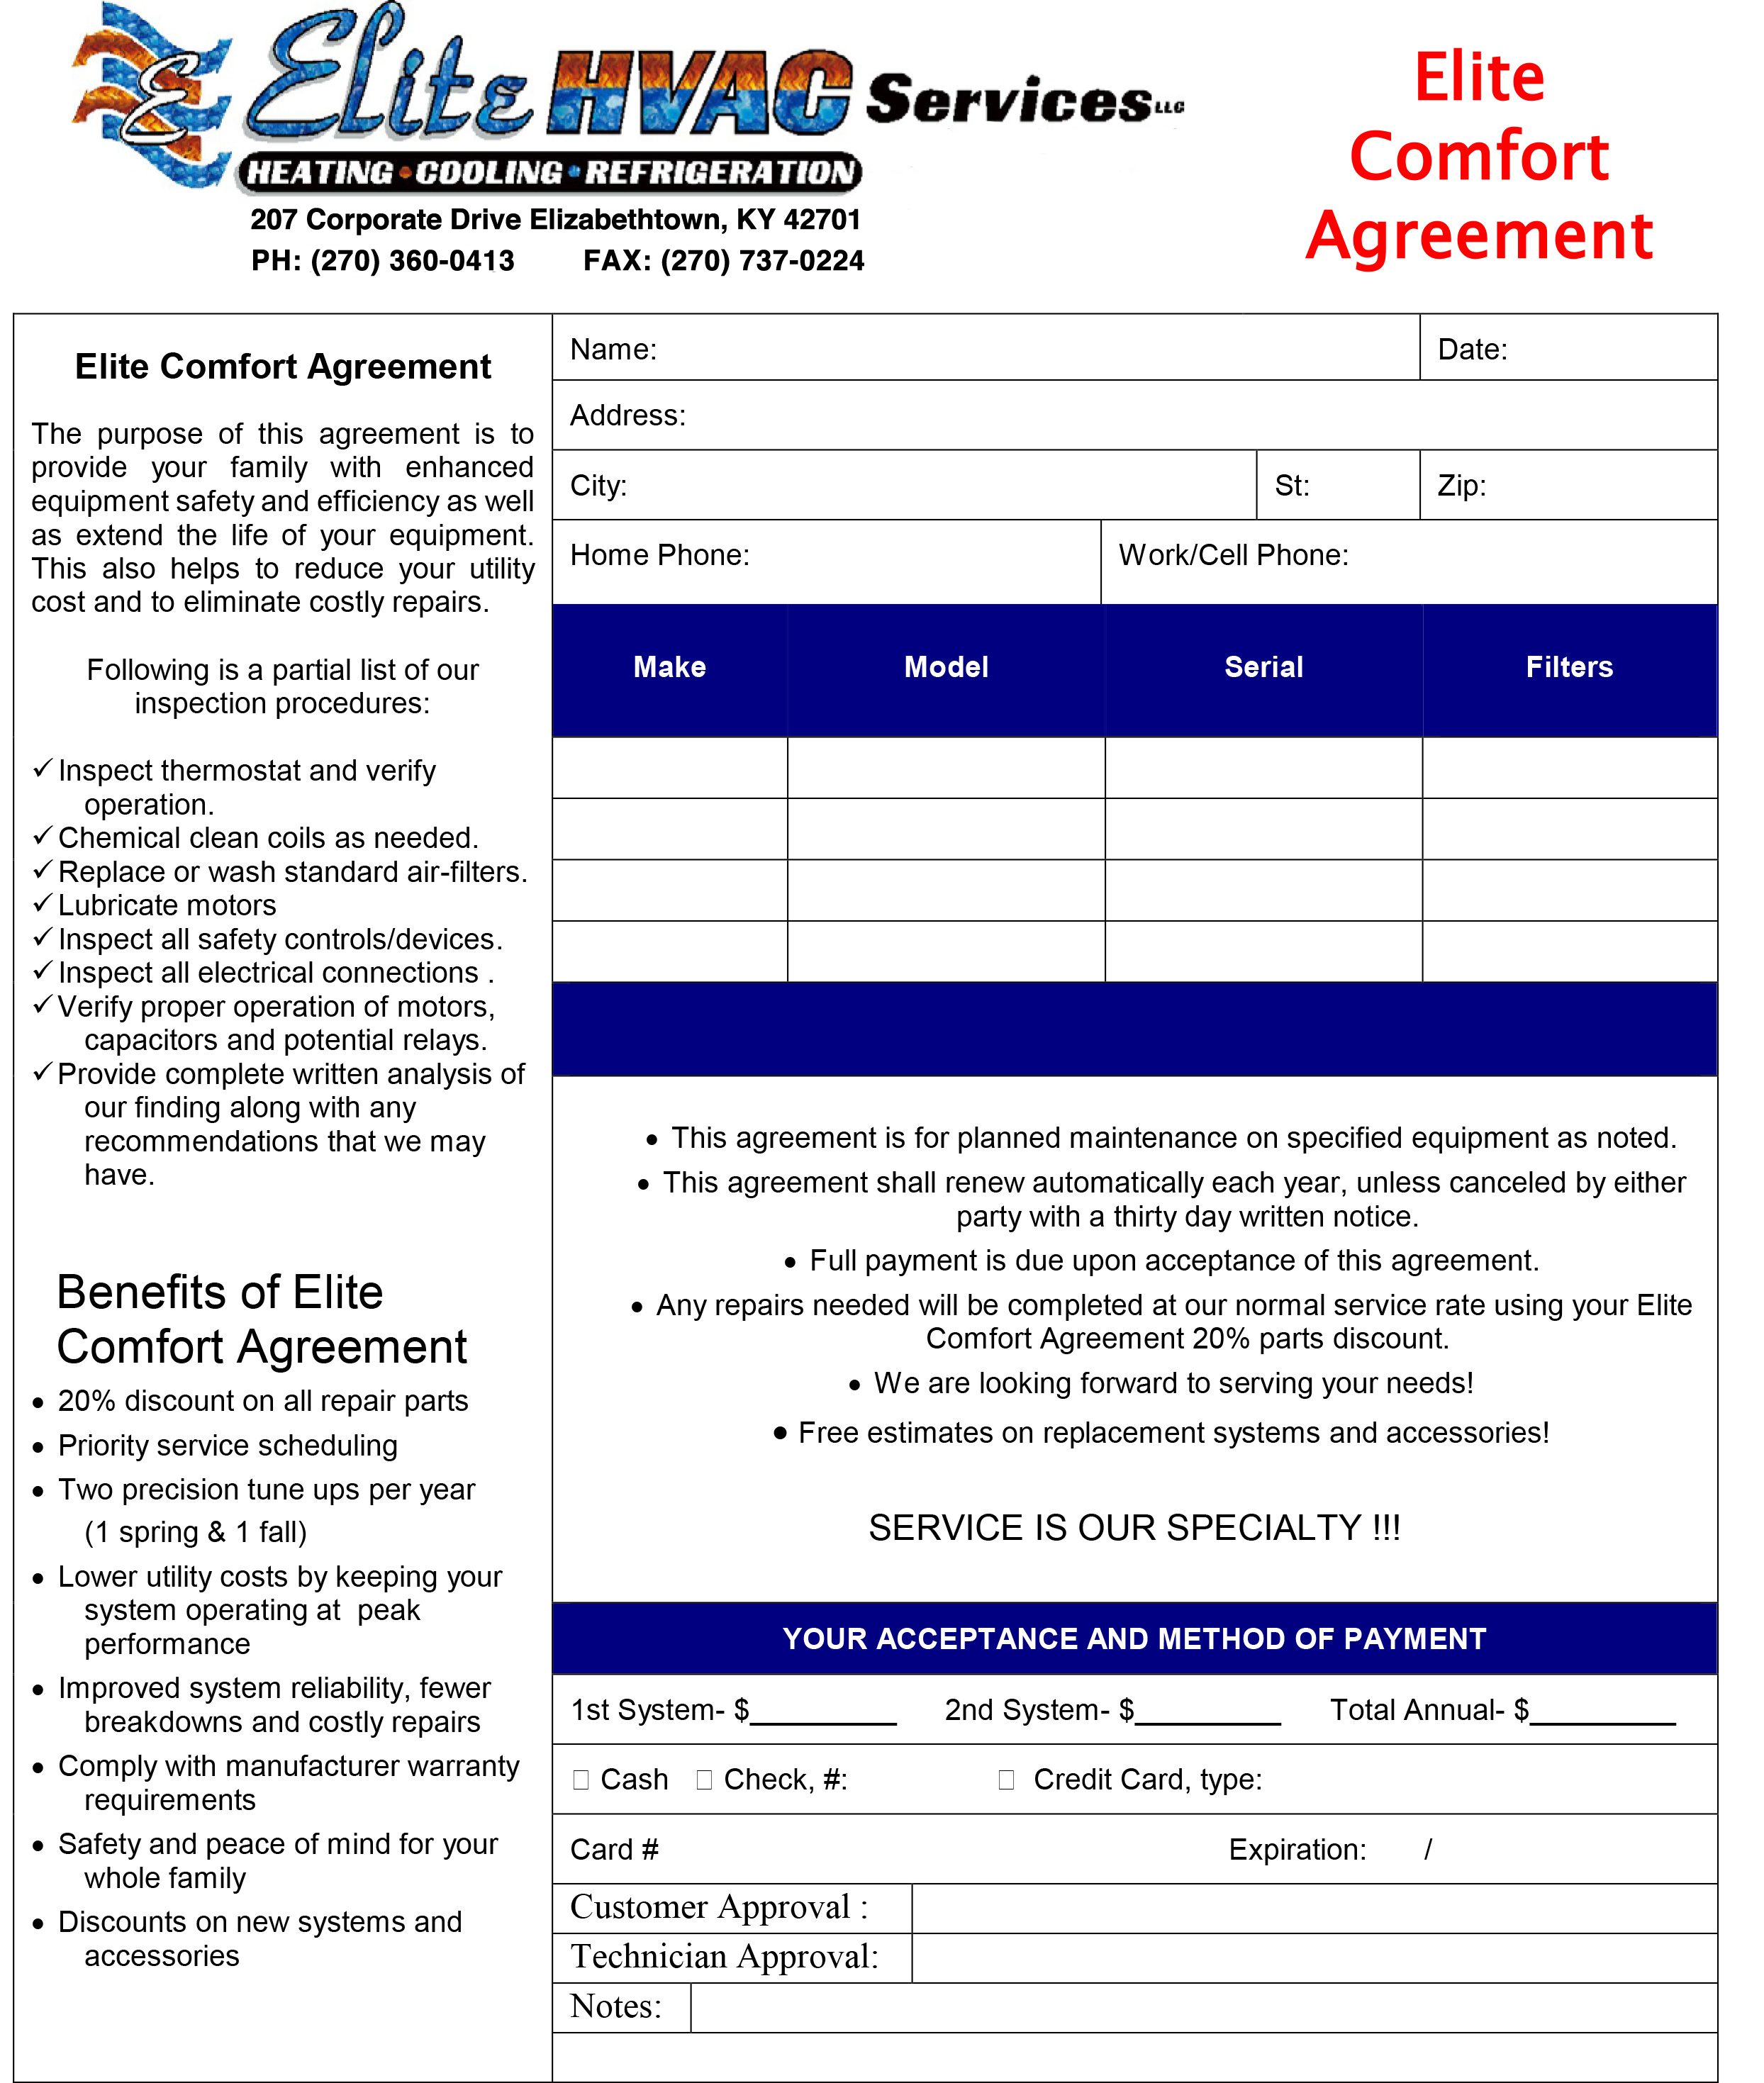 Click here to download our Elite Comfort Agreement